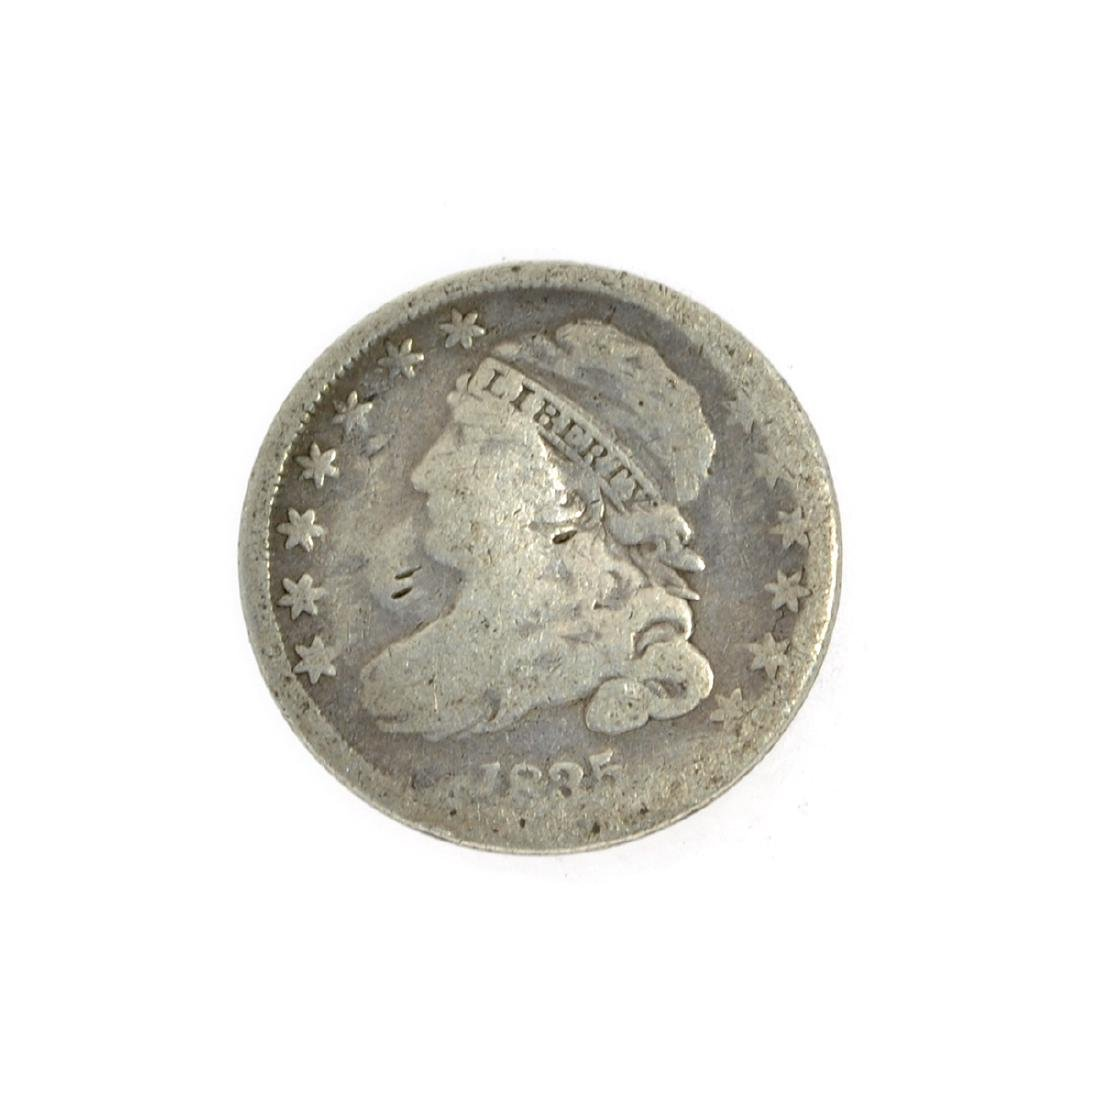 Rare 1835 Capped Bust Dime Coin